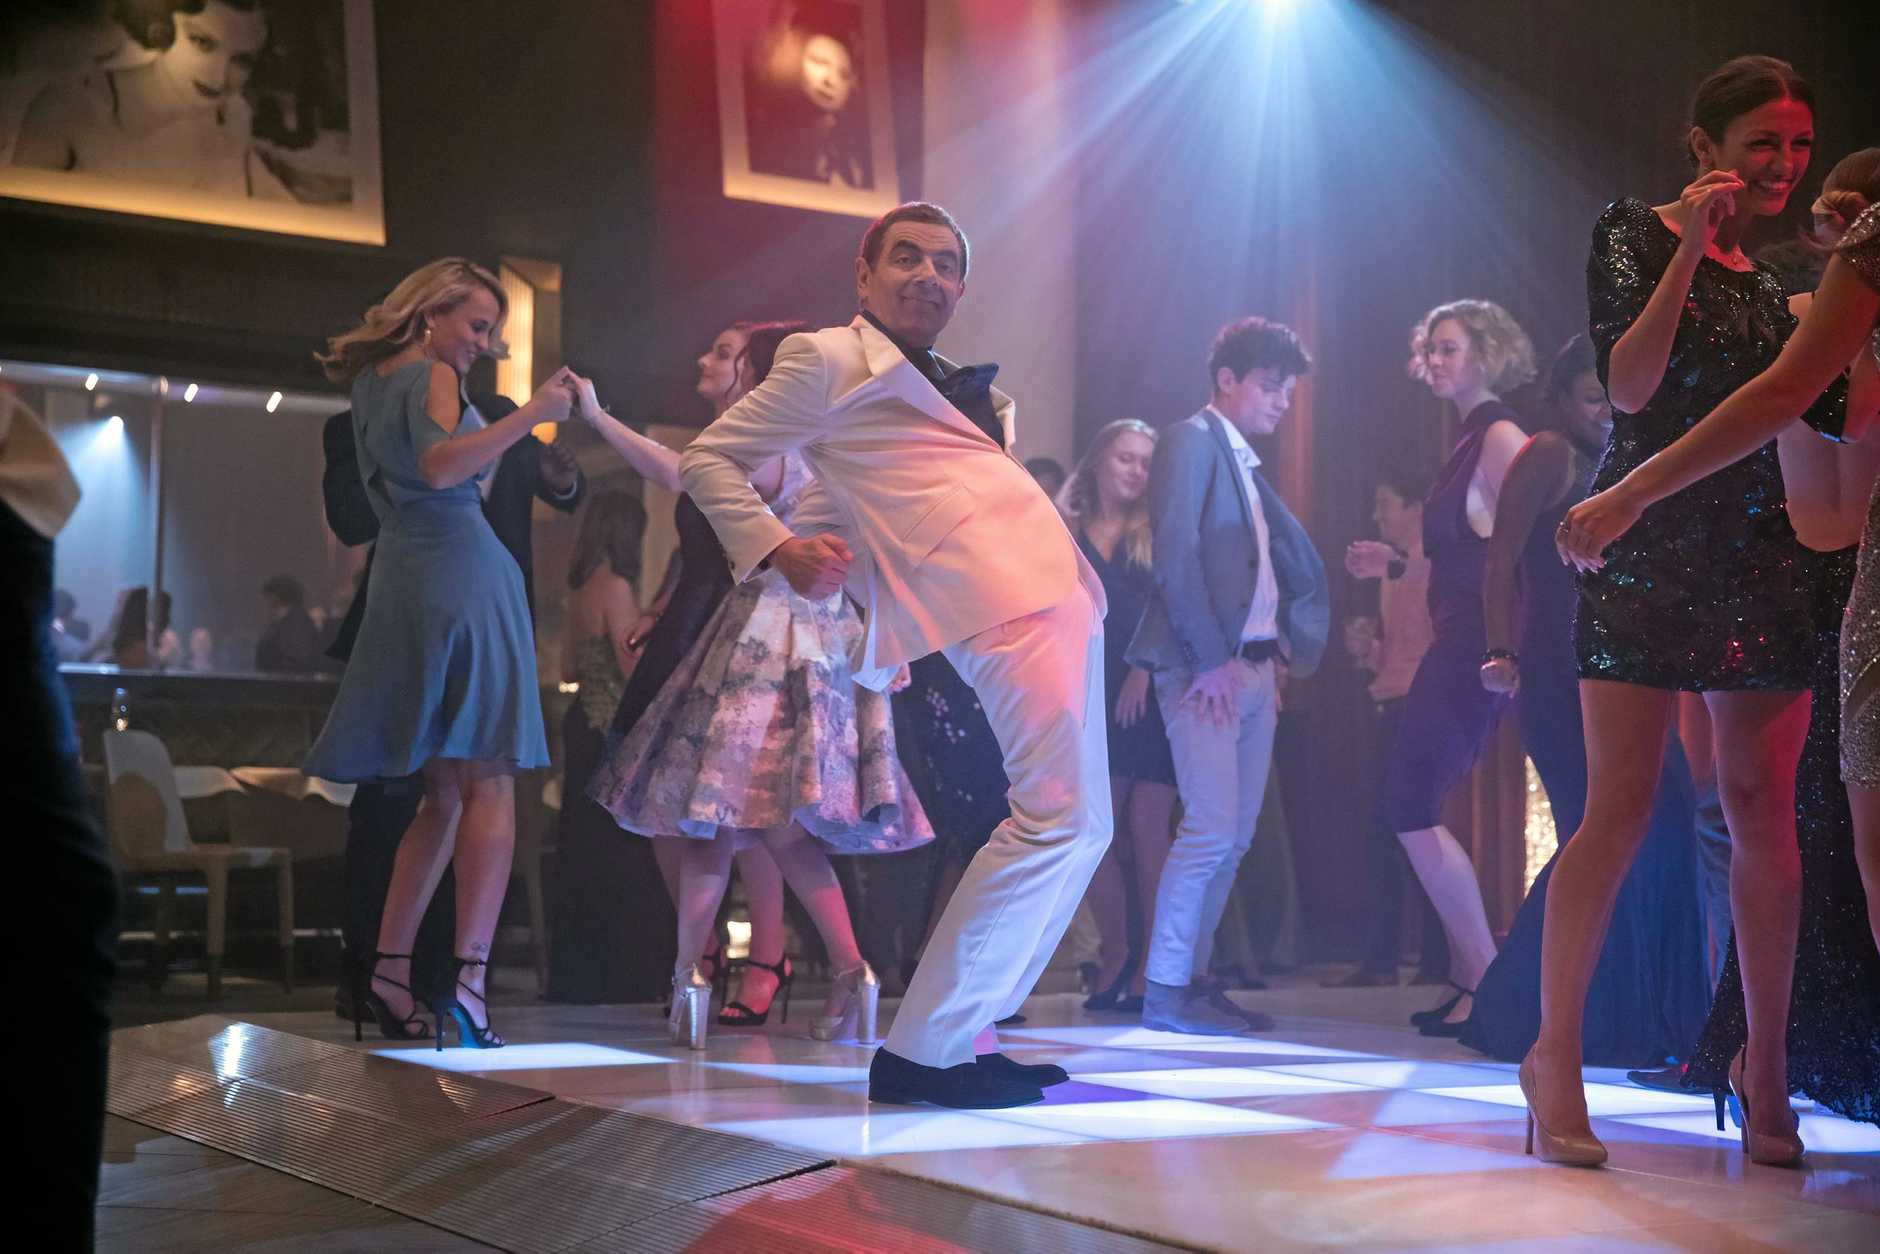 Rowan Atkinson in a scene from the movie Johnny English Strikes Again. Supplied by Universal Pictures.